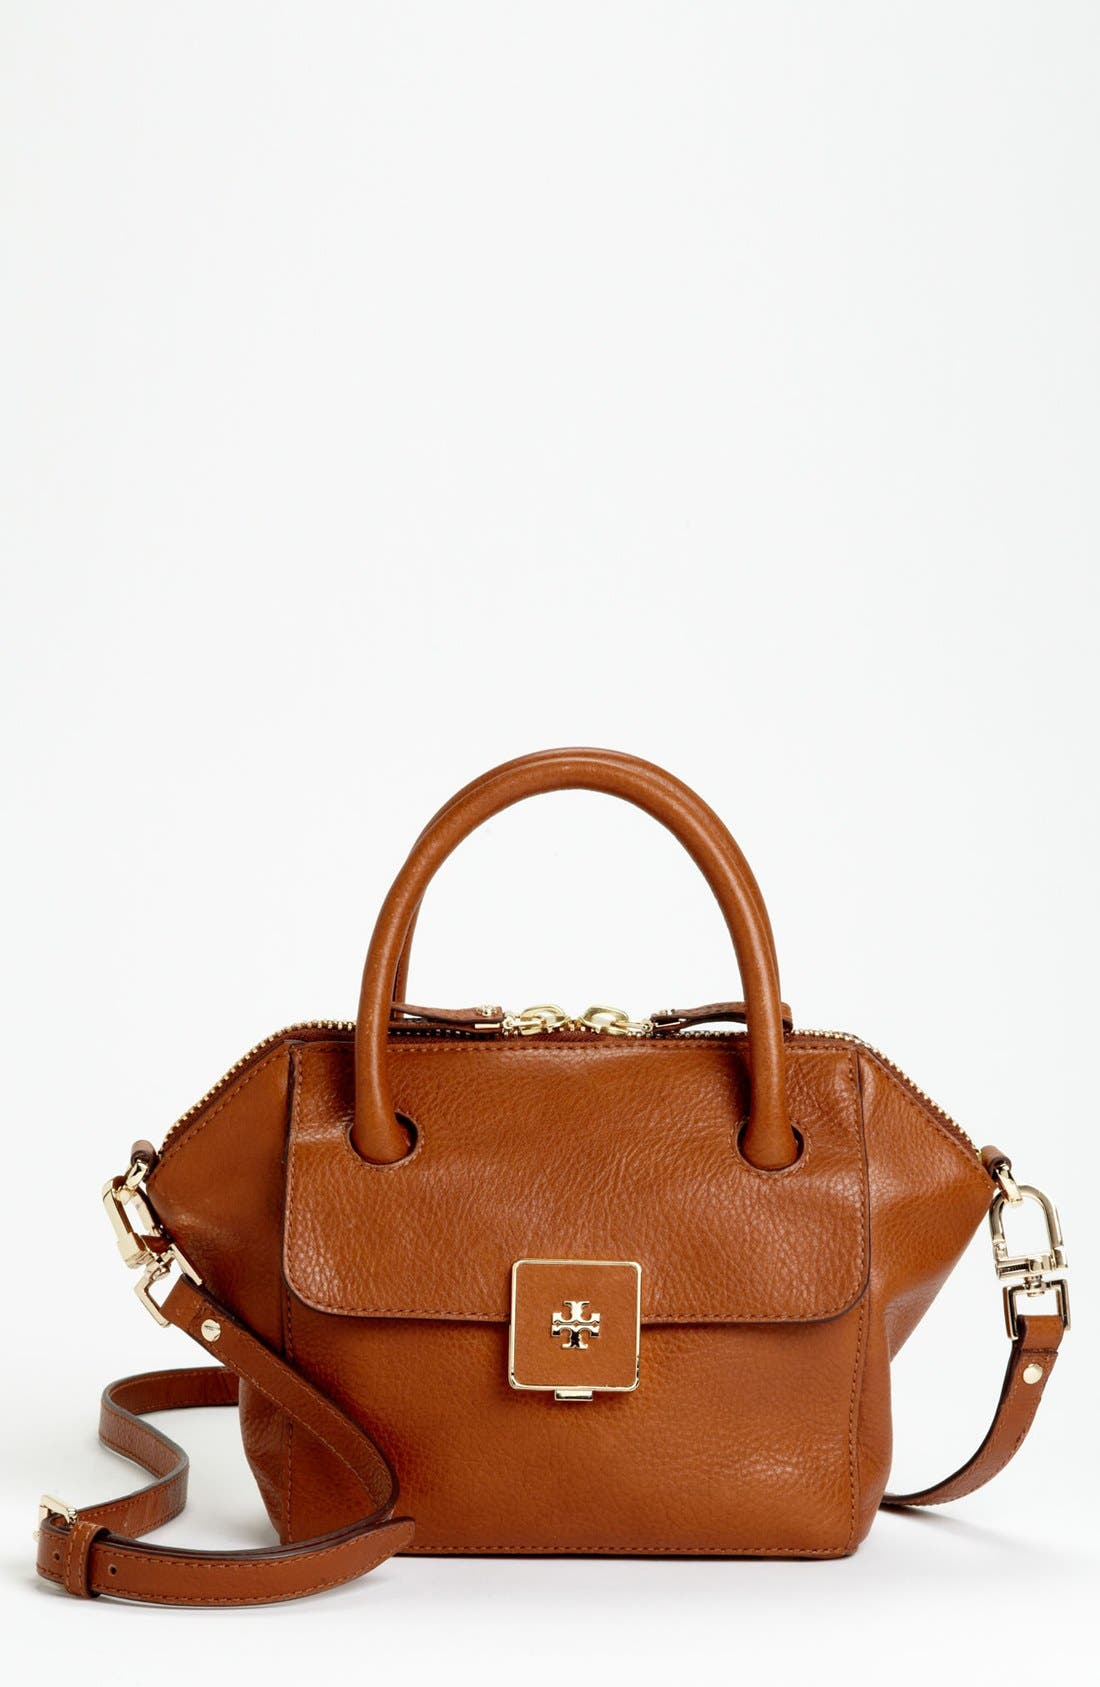 Main Image - Tory Burch 'Clara - Mini' Leather Crossbody Bag